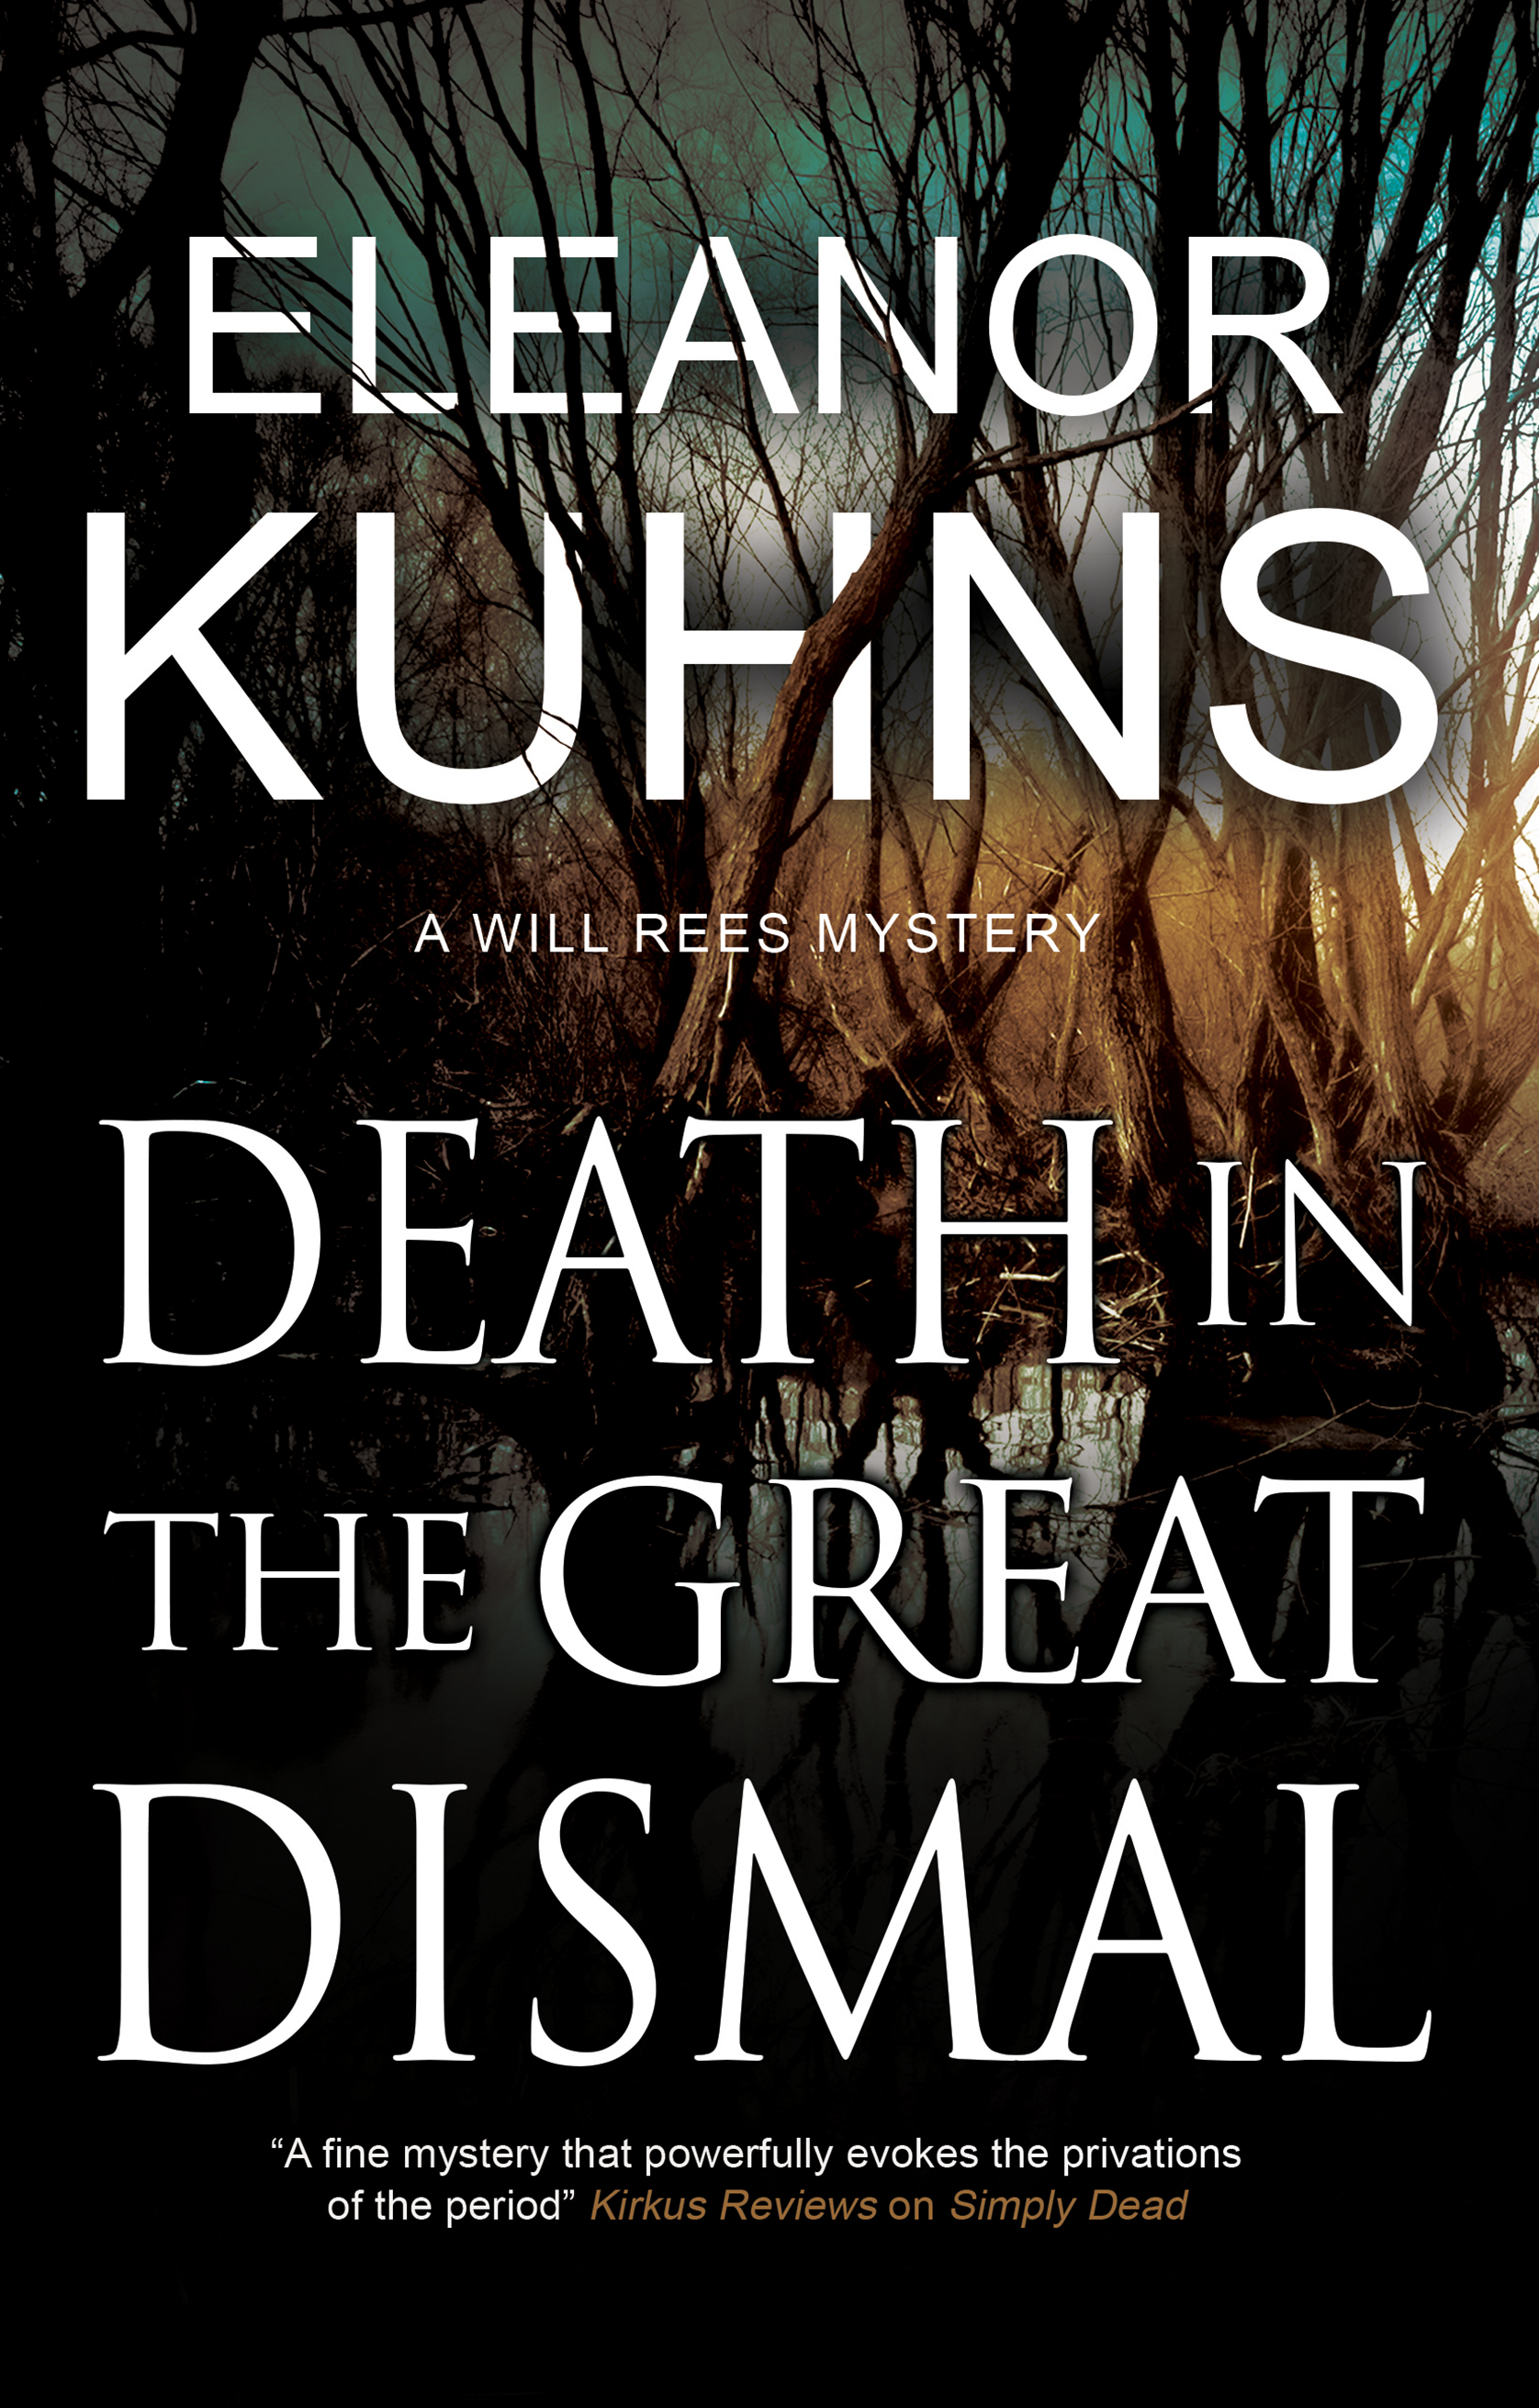 DEATH IN THE GREAT DISMAL - EKuhns